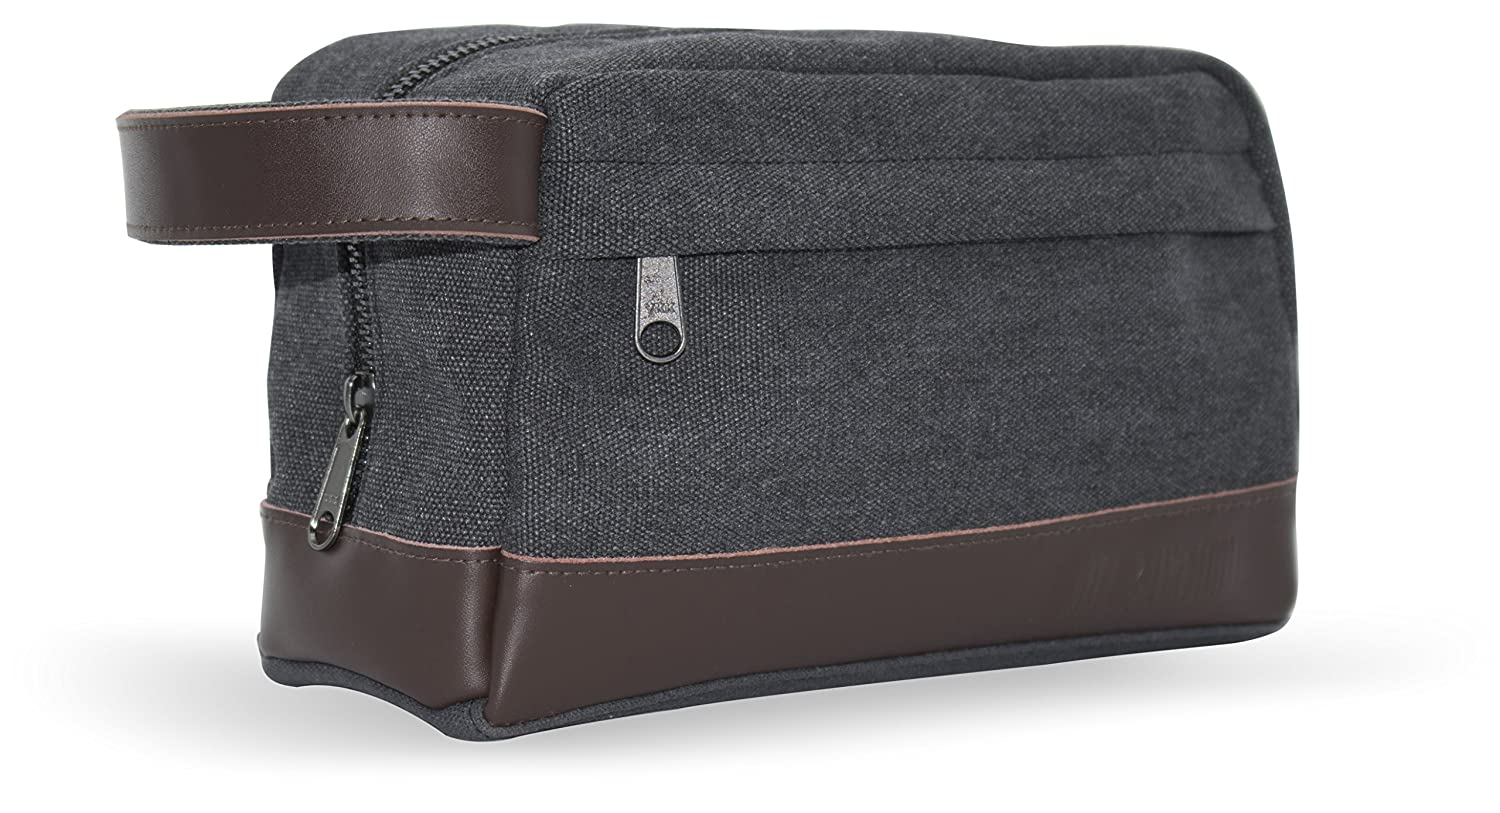 Men s Toiletry Wash Bag Dopp Kit – Canvas with Genuine Leather trim for Travel, Grooming and Shaving The Toiletry Wash Bag for Men by Mill Oxford